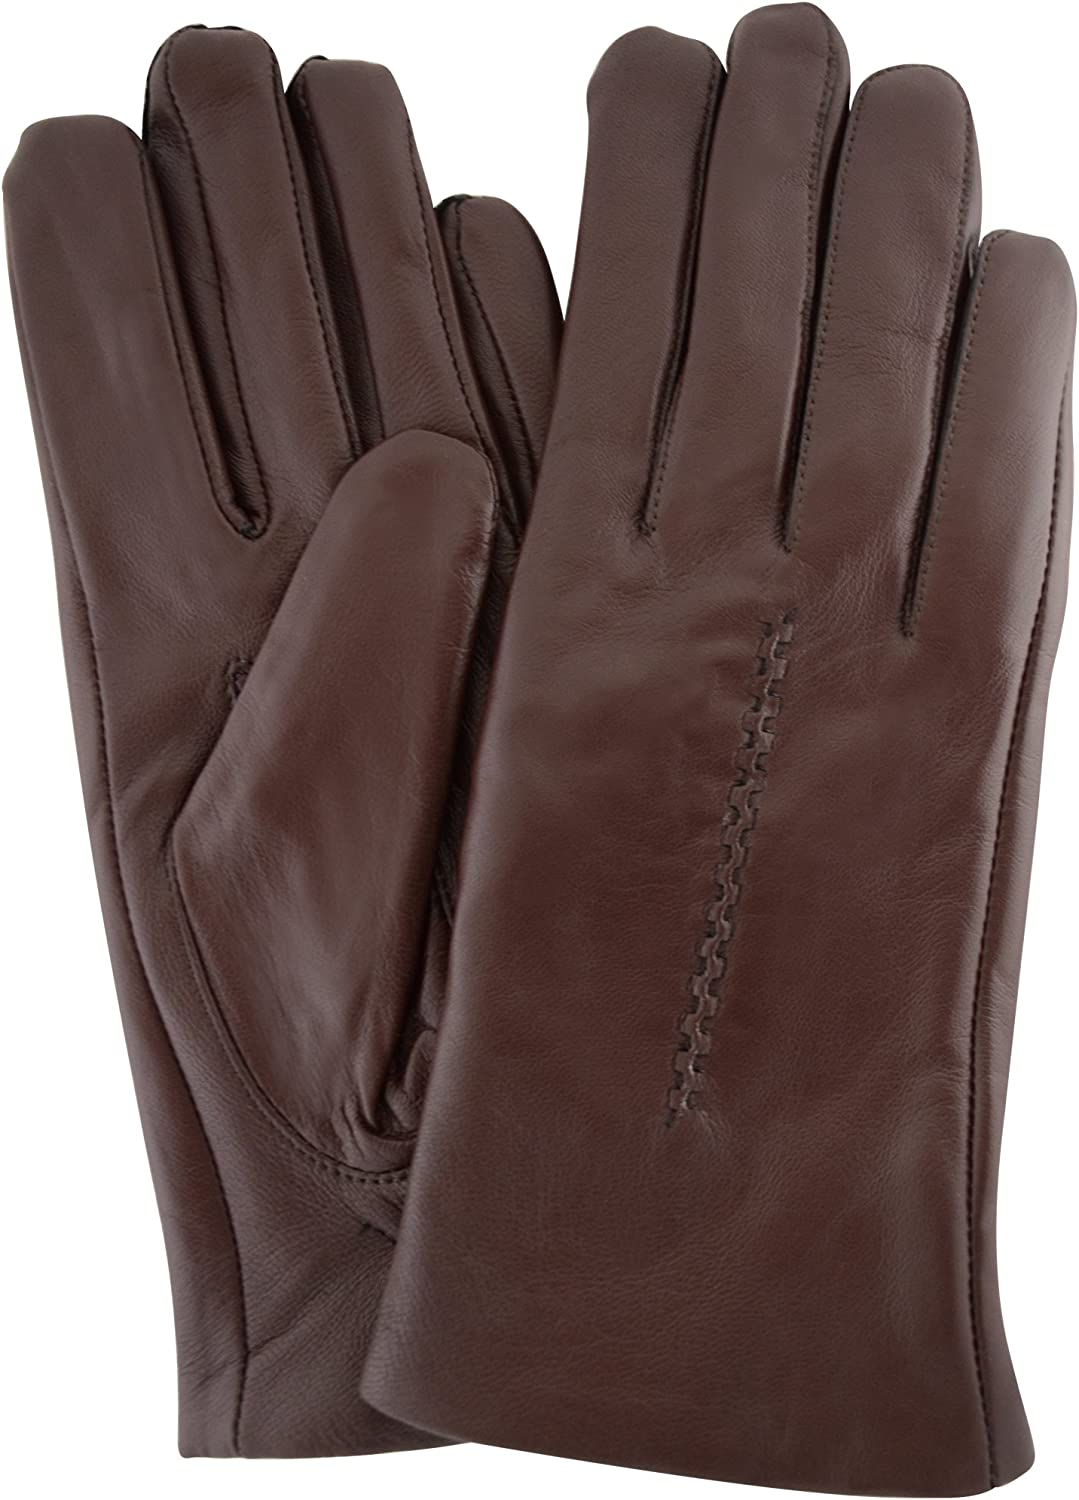 Ladies Butter Soft Leather Glove with Woven Stitch Design & Warm Fleece Lining